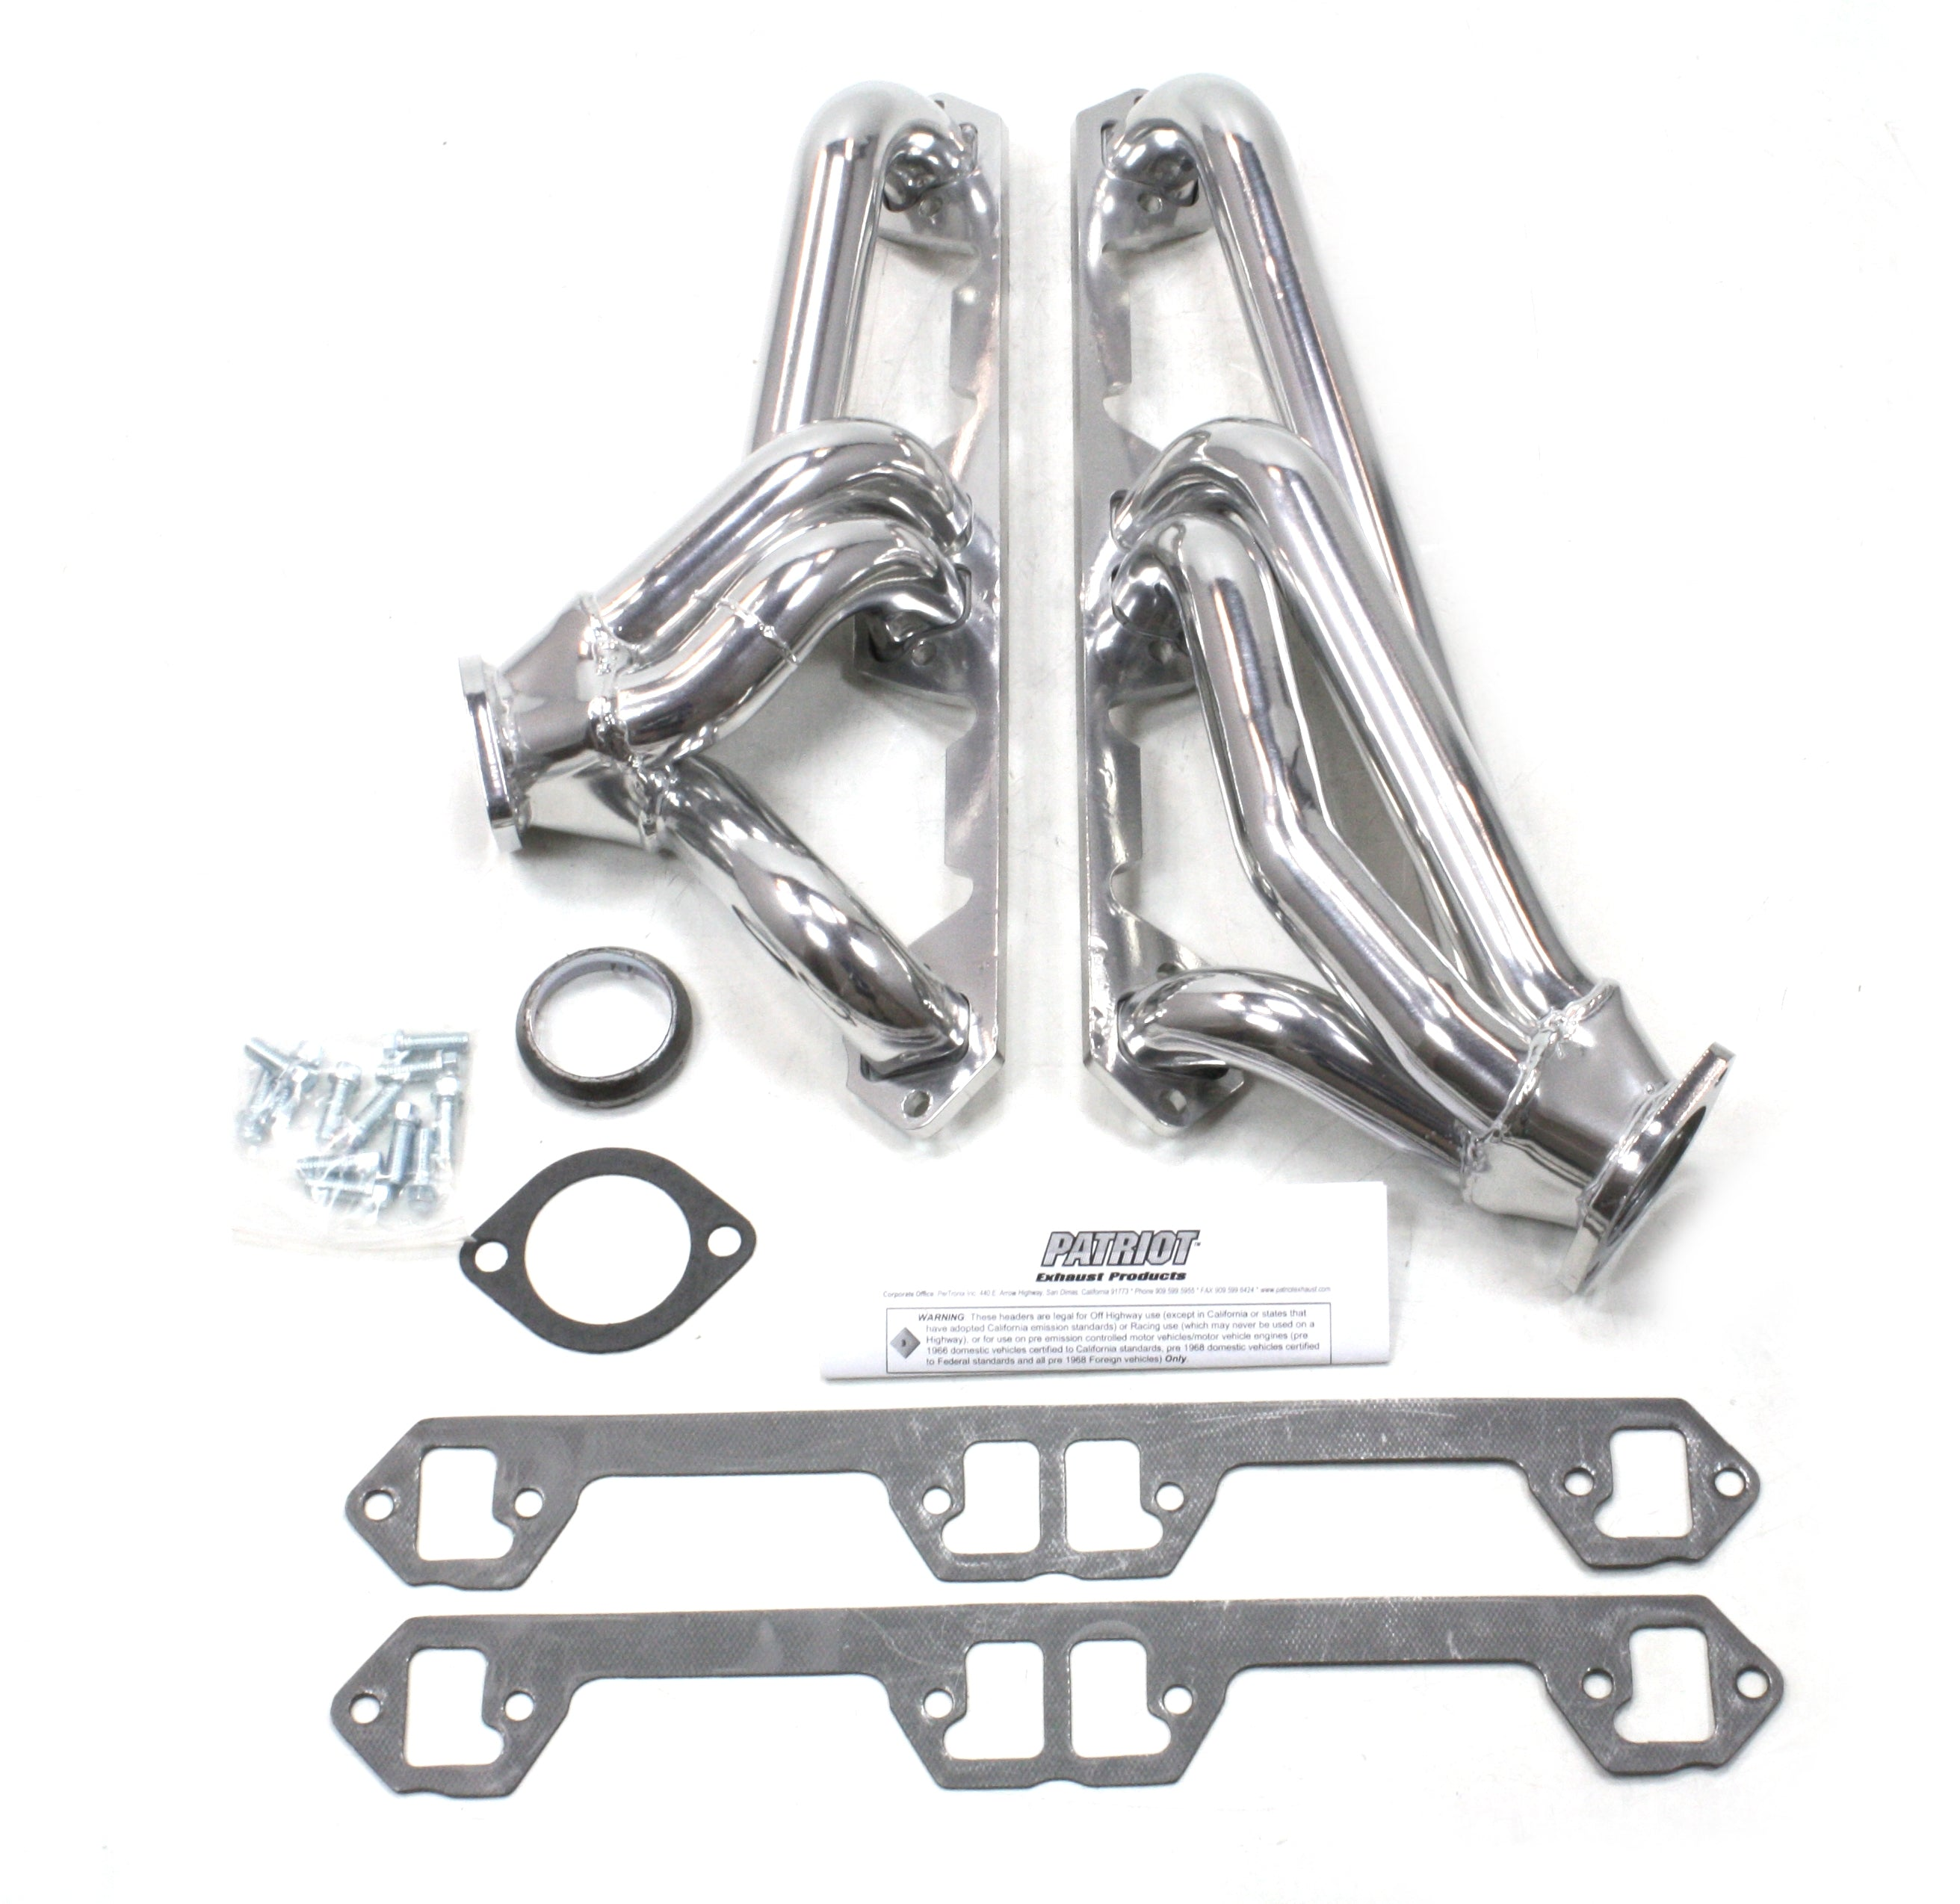 "Patriot Exhaust H8600-1 1 5/8"" Clippster Direct Replacement  Header with dog leg ports 68-70 AMX, Javelin, Rebel, Ambassador 290-390 71-74 Javelin, Rebel, Ambassador 304-401 72-79 CJ5,7,8, Cherokee 74-83, Wagoneer 71-91, J10, J20 71-88 Cherokee Metallic C"